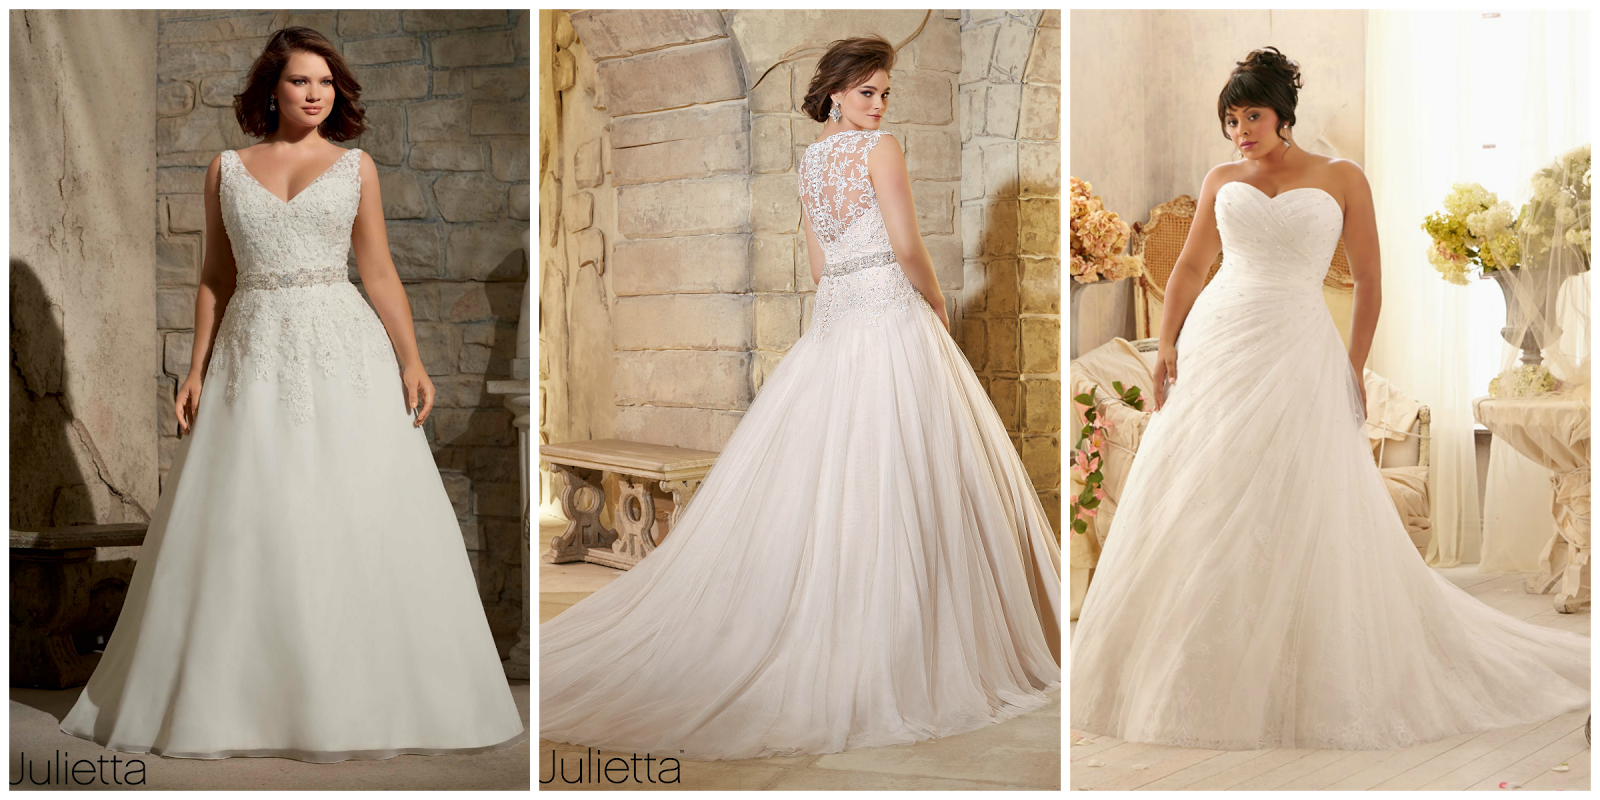 mori lees julietta collection gorgeous julietta wedding dress At Brides of America we always treat all of our brides like a princess while they are here for their appointment You are the center of attention